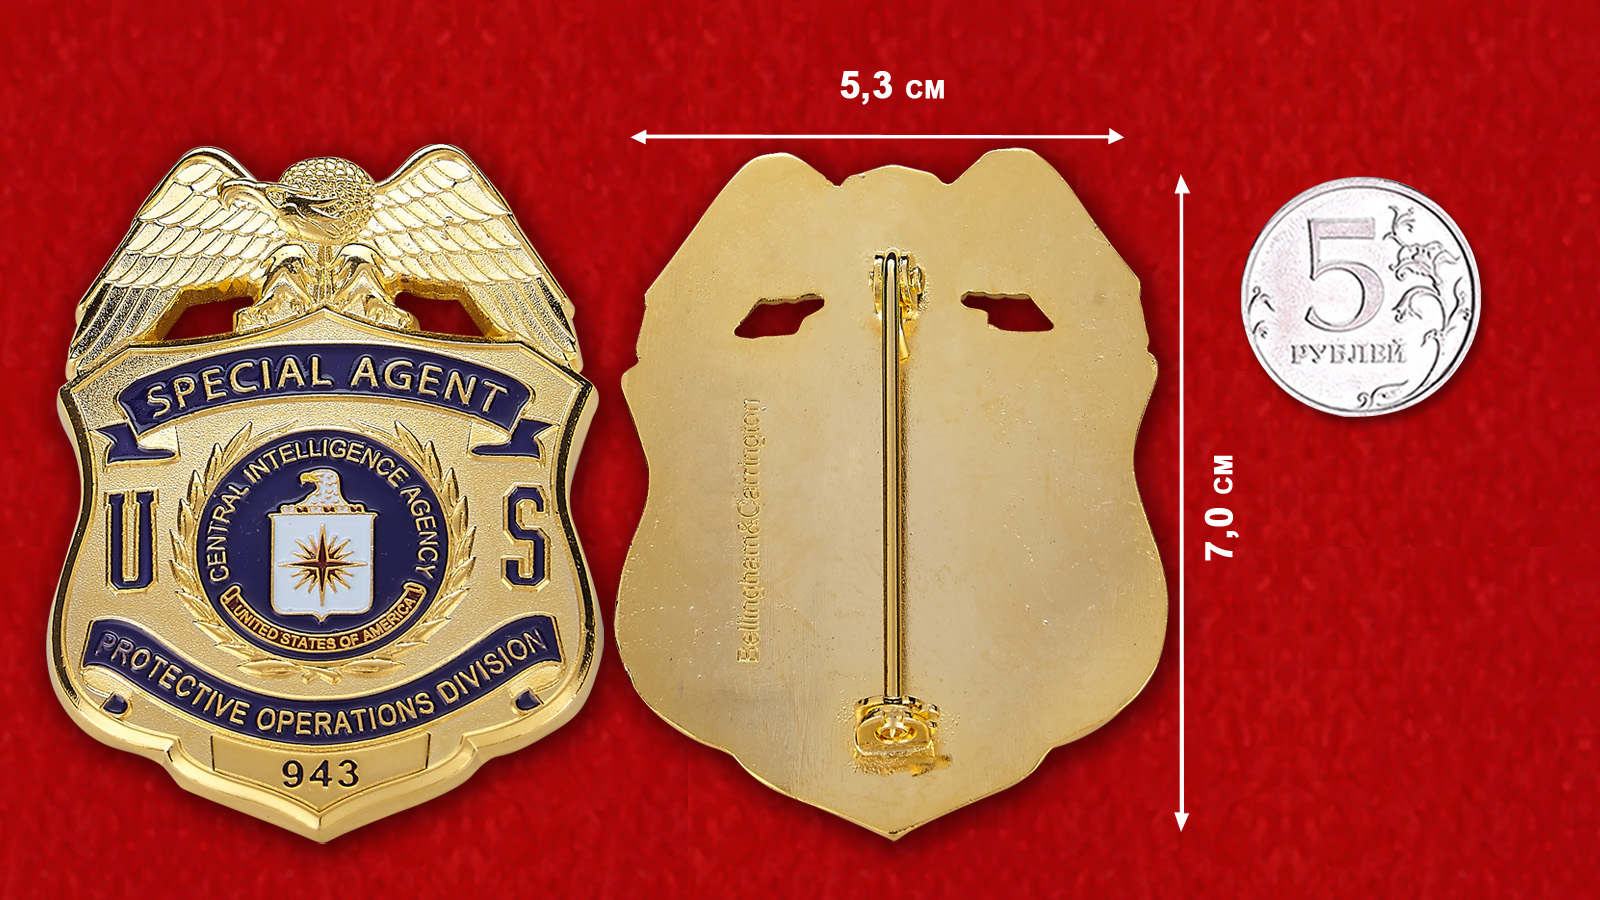 CIA Special Agent Badge - comparative size